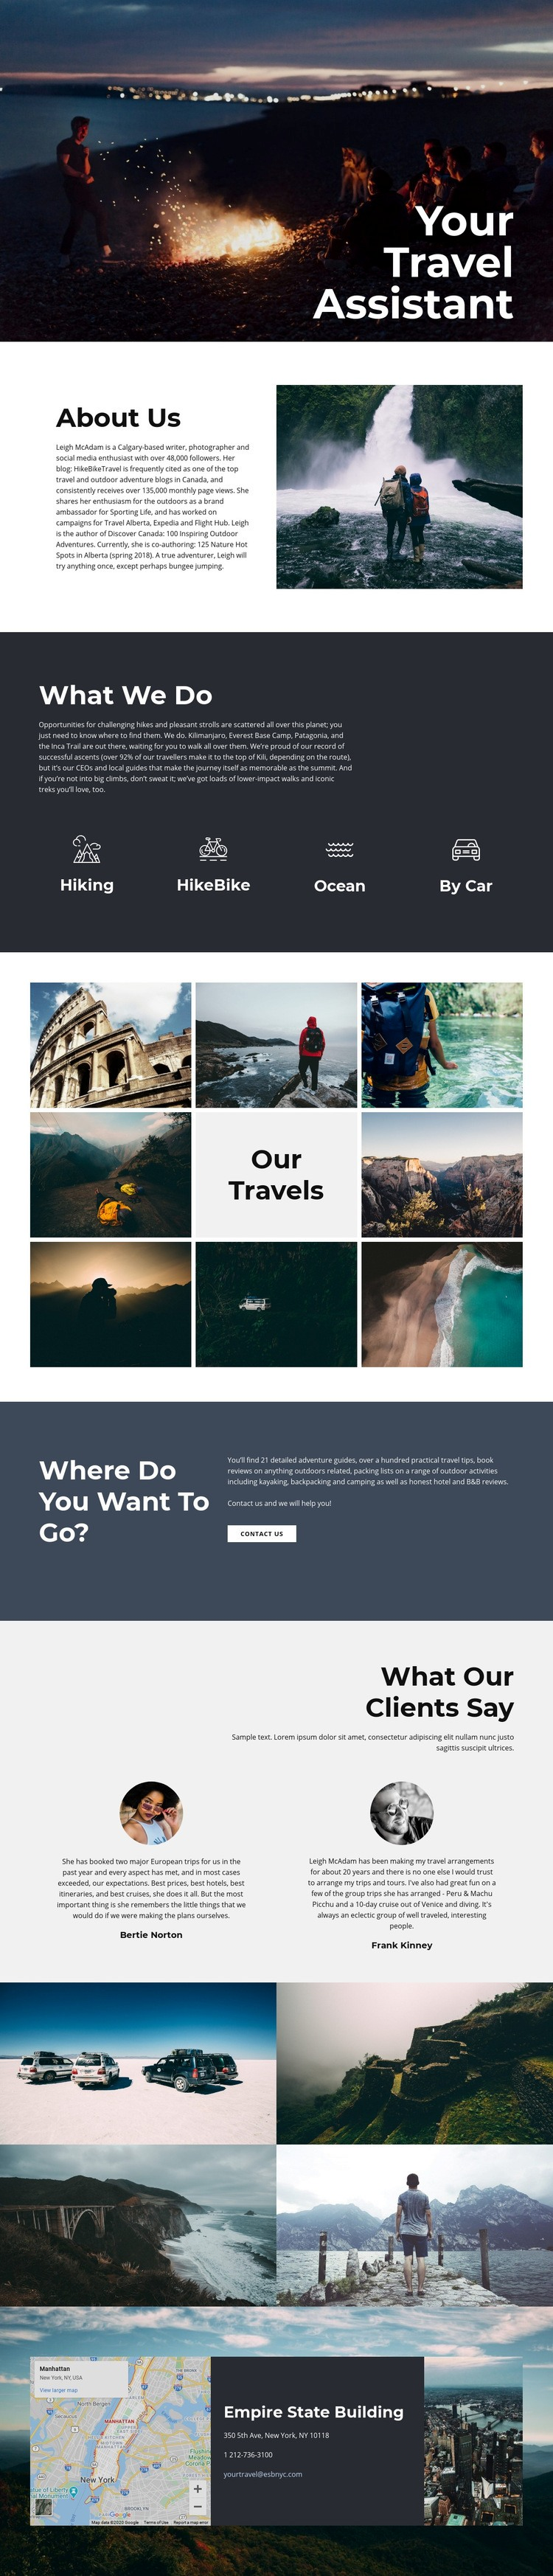 Travel Assistant Html Code Example